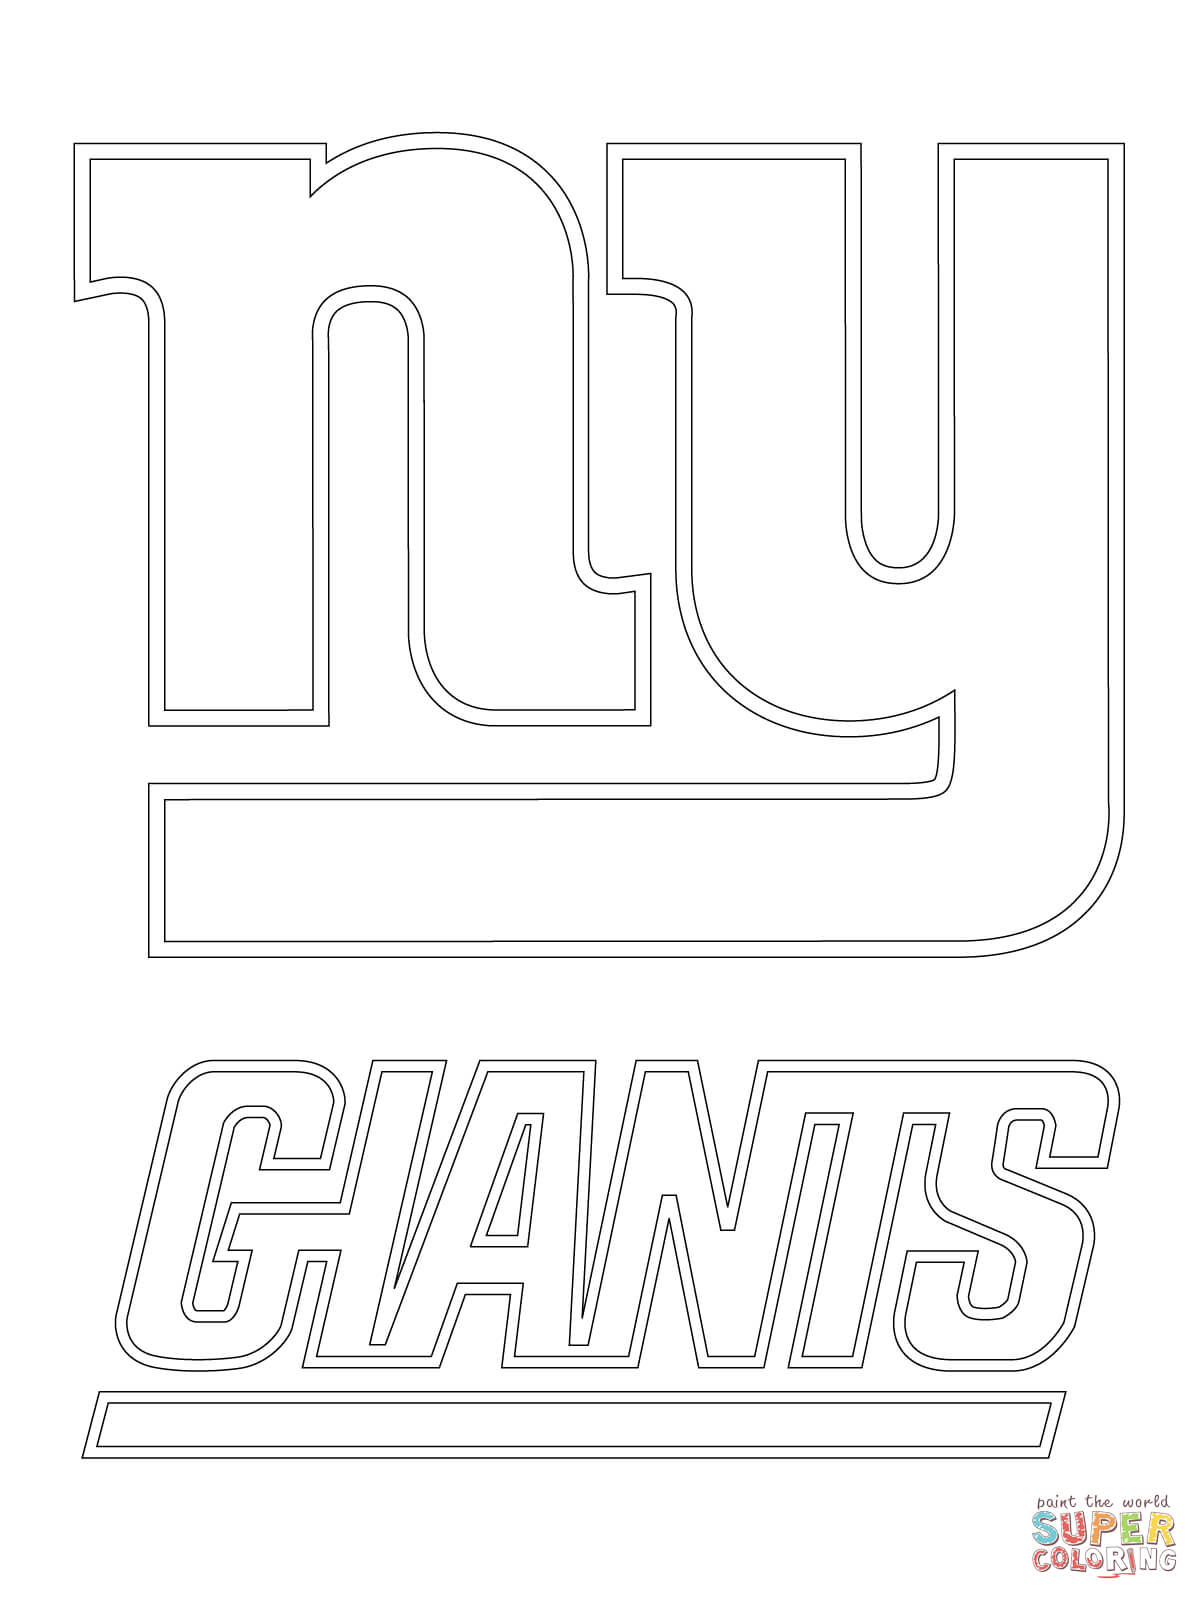 ny giants coloring pages - photo#2